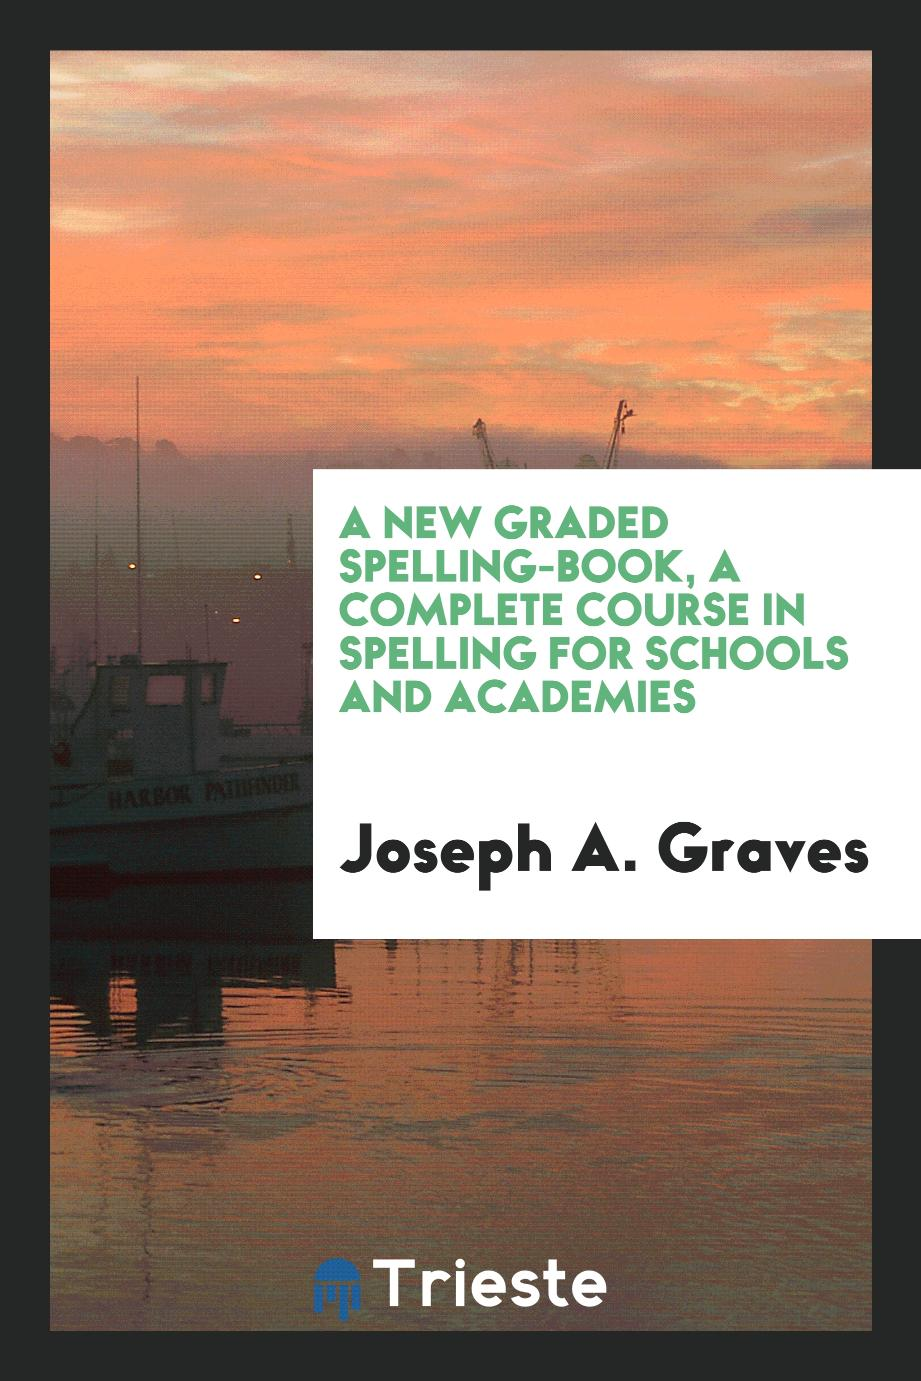 A New Graded Spelling-Book, a Complete Course in Spelling for Schools and Academies